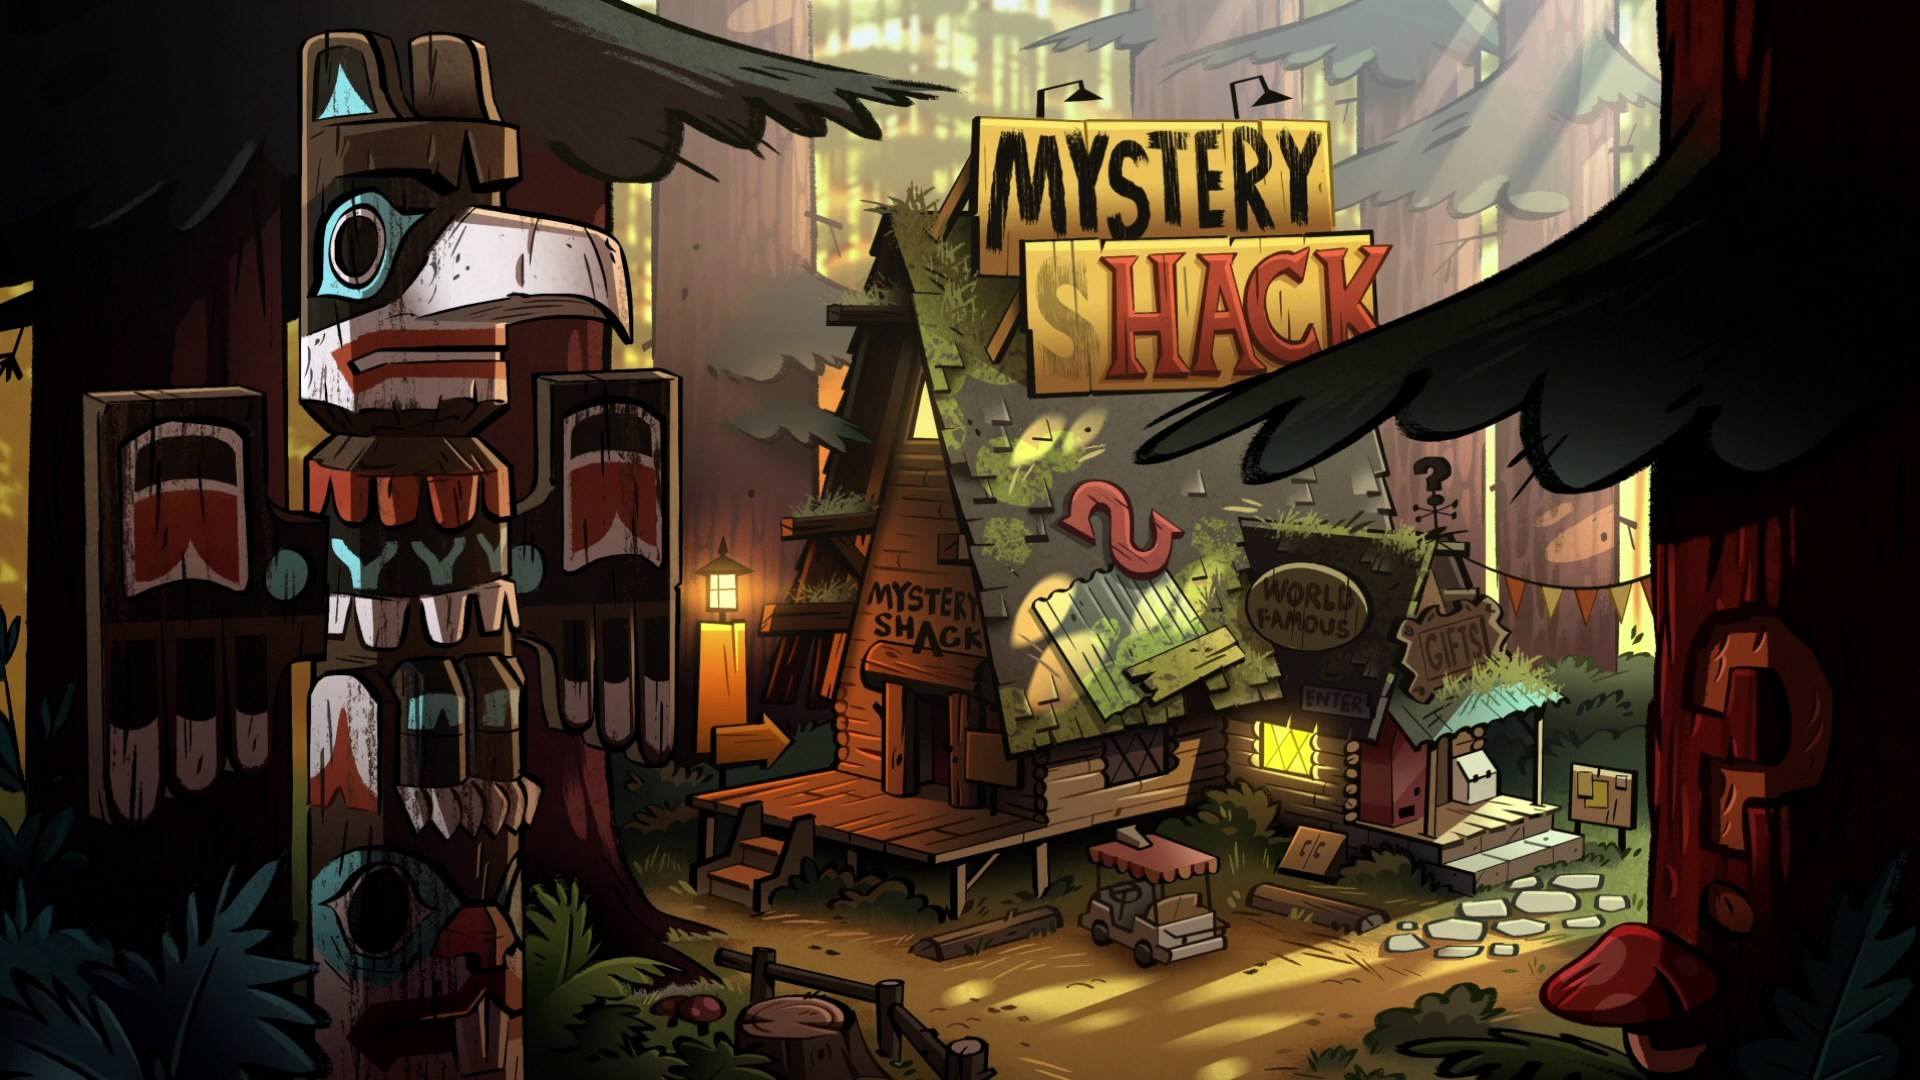 1920x1080 gravity falls pic - Full HD Wallpapers, Photos, Hiraldo Gill 2017-03-